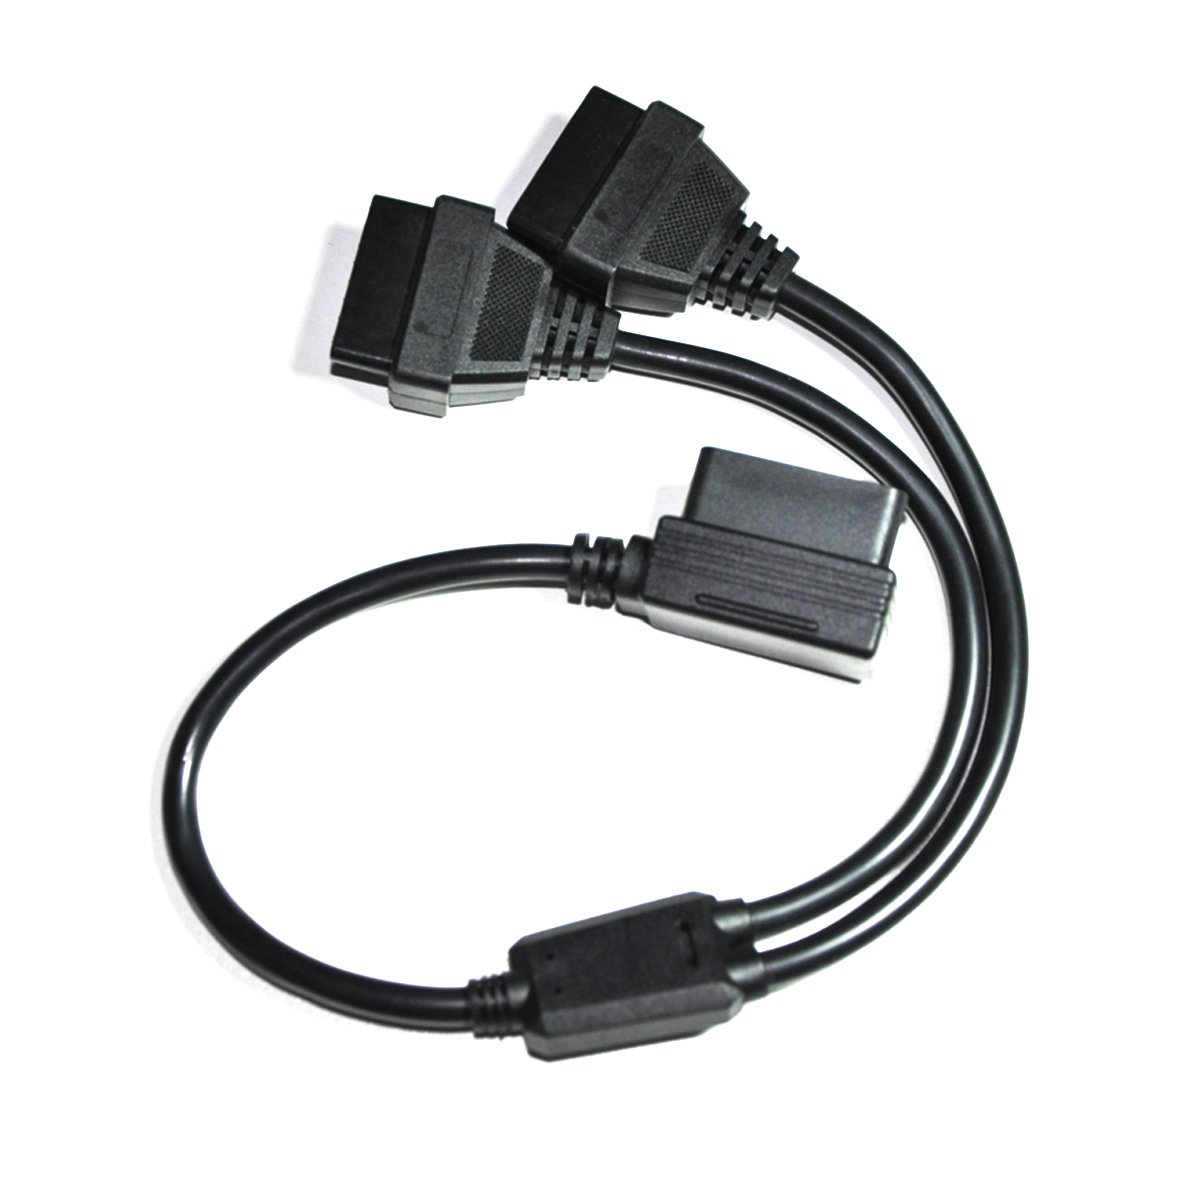 Vgate OBD2 Splitter Extenstion Cable Male to Dual Female Y Cable 16Pin Diagnostic Cable Vgatemall VG036